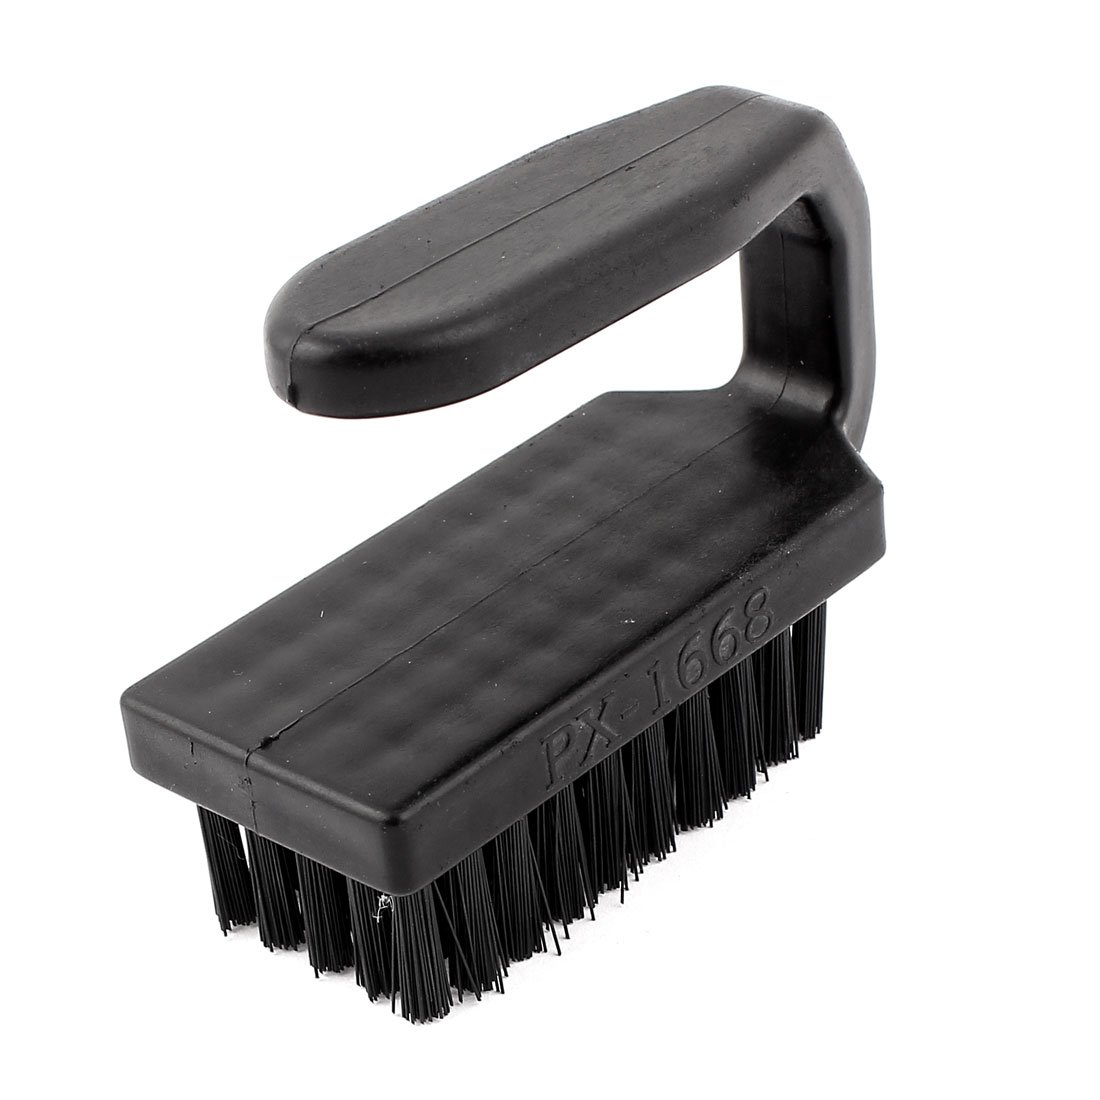 uxcell Plastic Anti-Static Cleaning Stiff Bristles Scrub Brush Cleaner Black a15052100ux0995